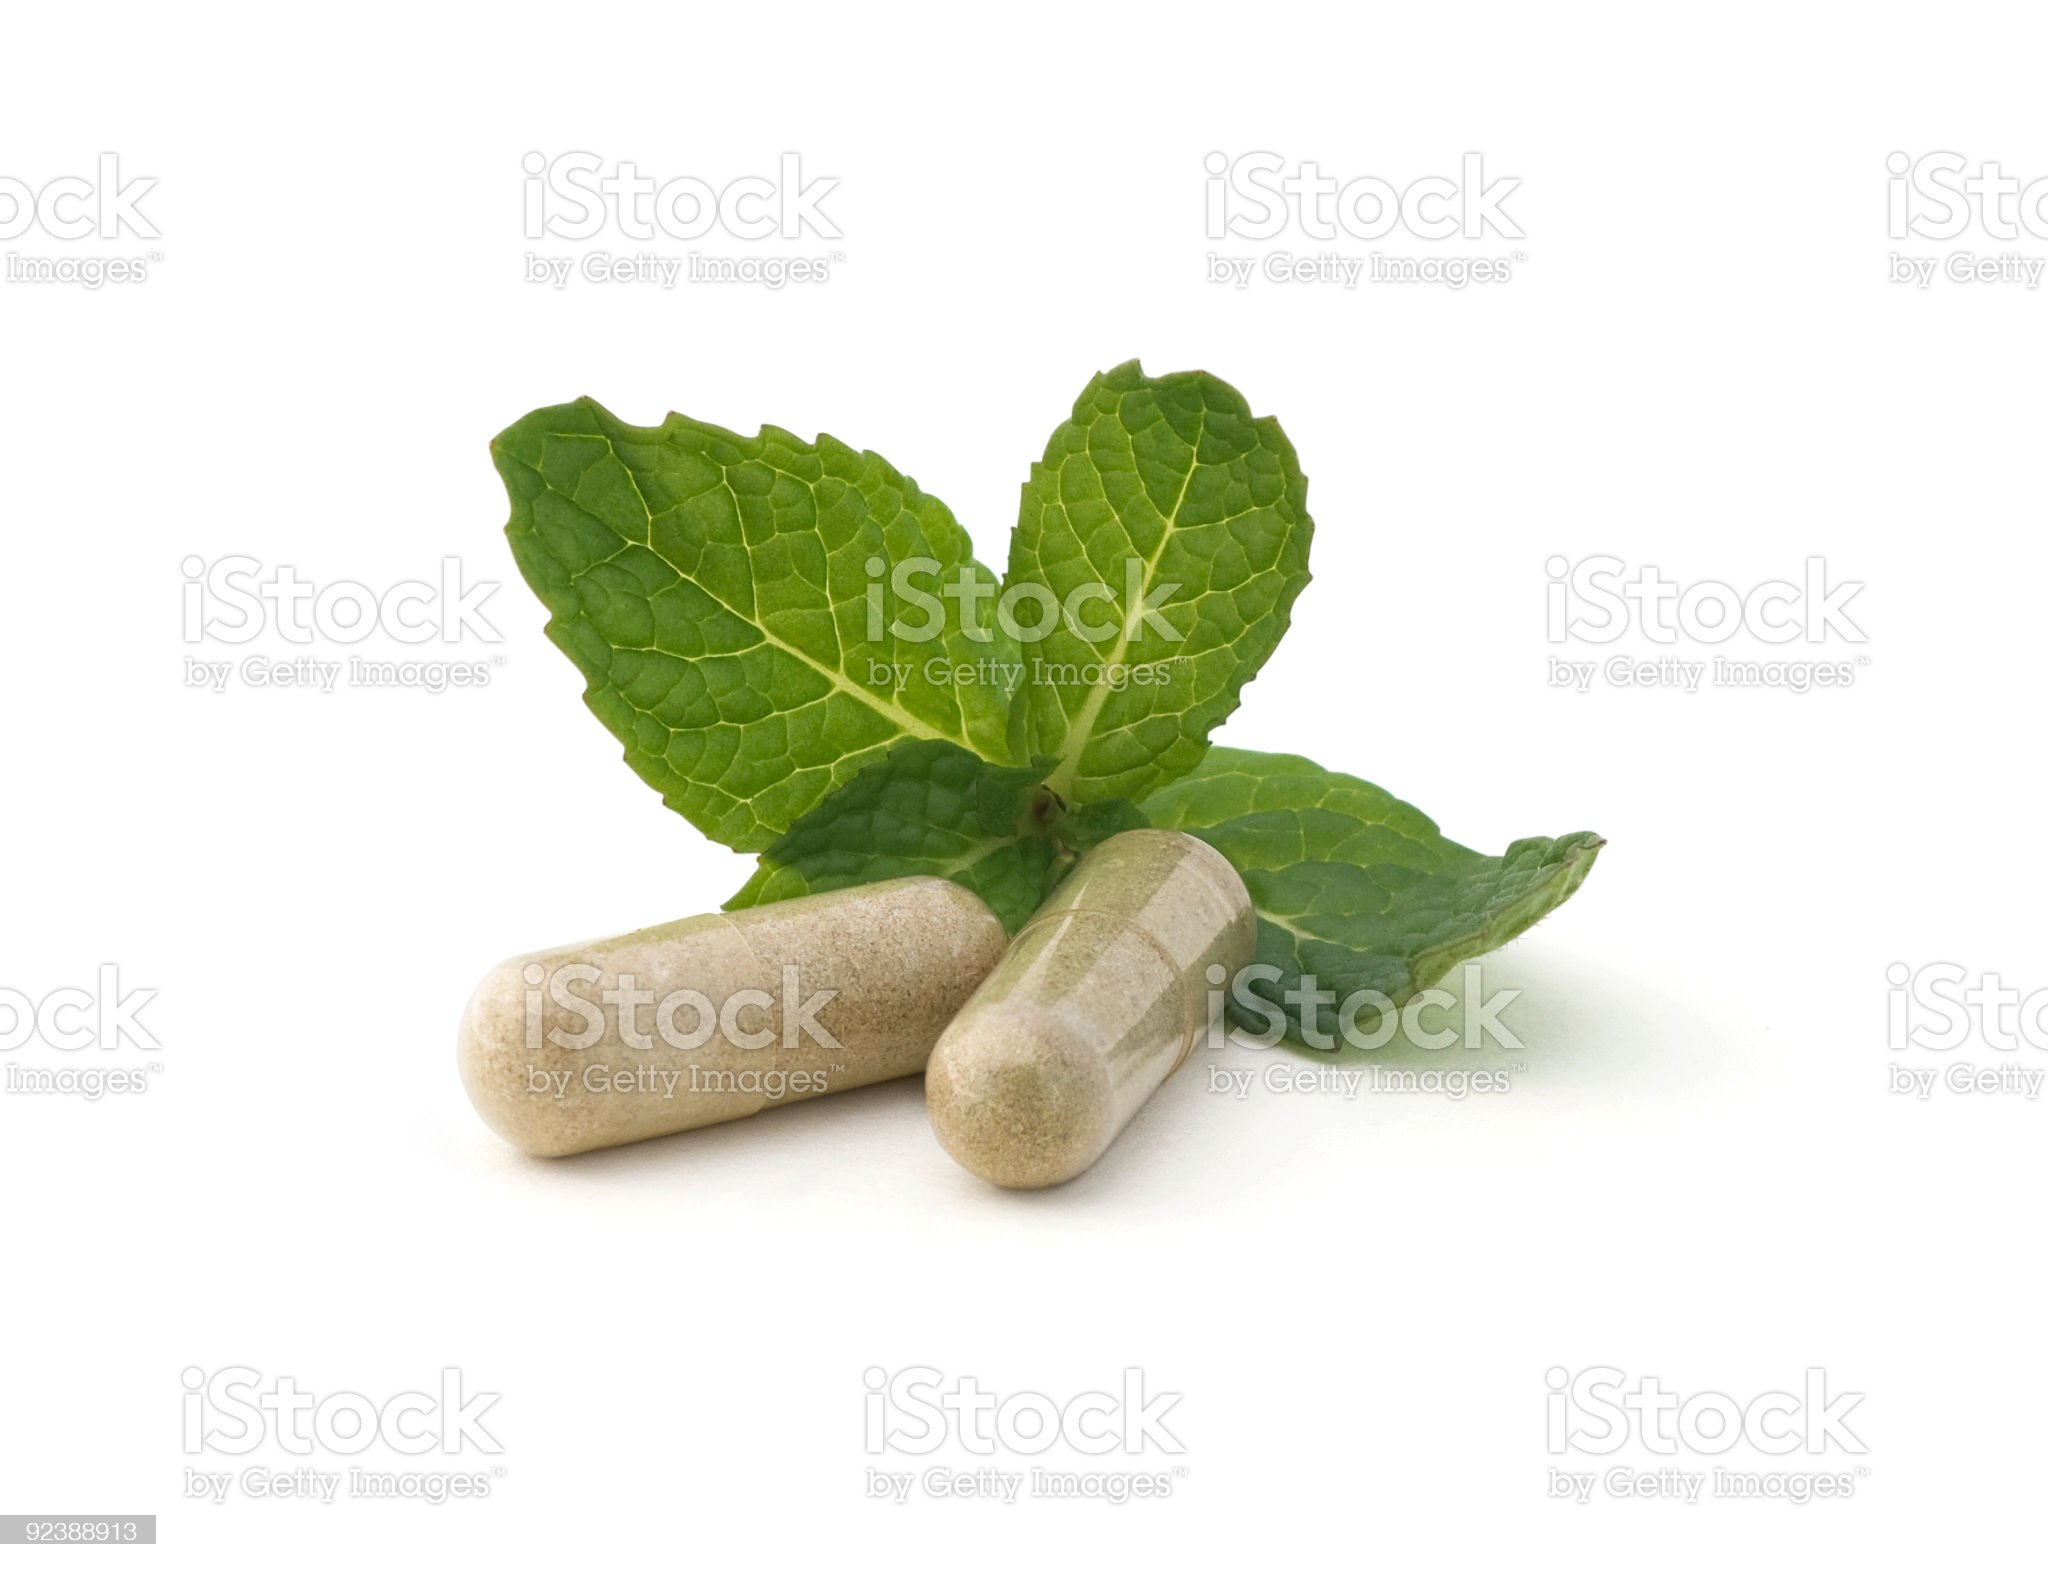 Two capsules and leaves of herbal medicine on white surface royalty-free stock photo